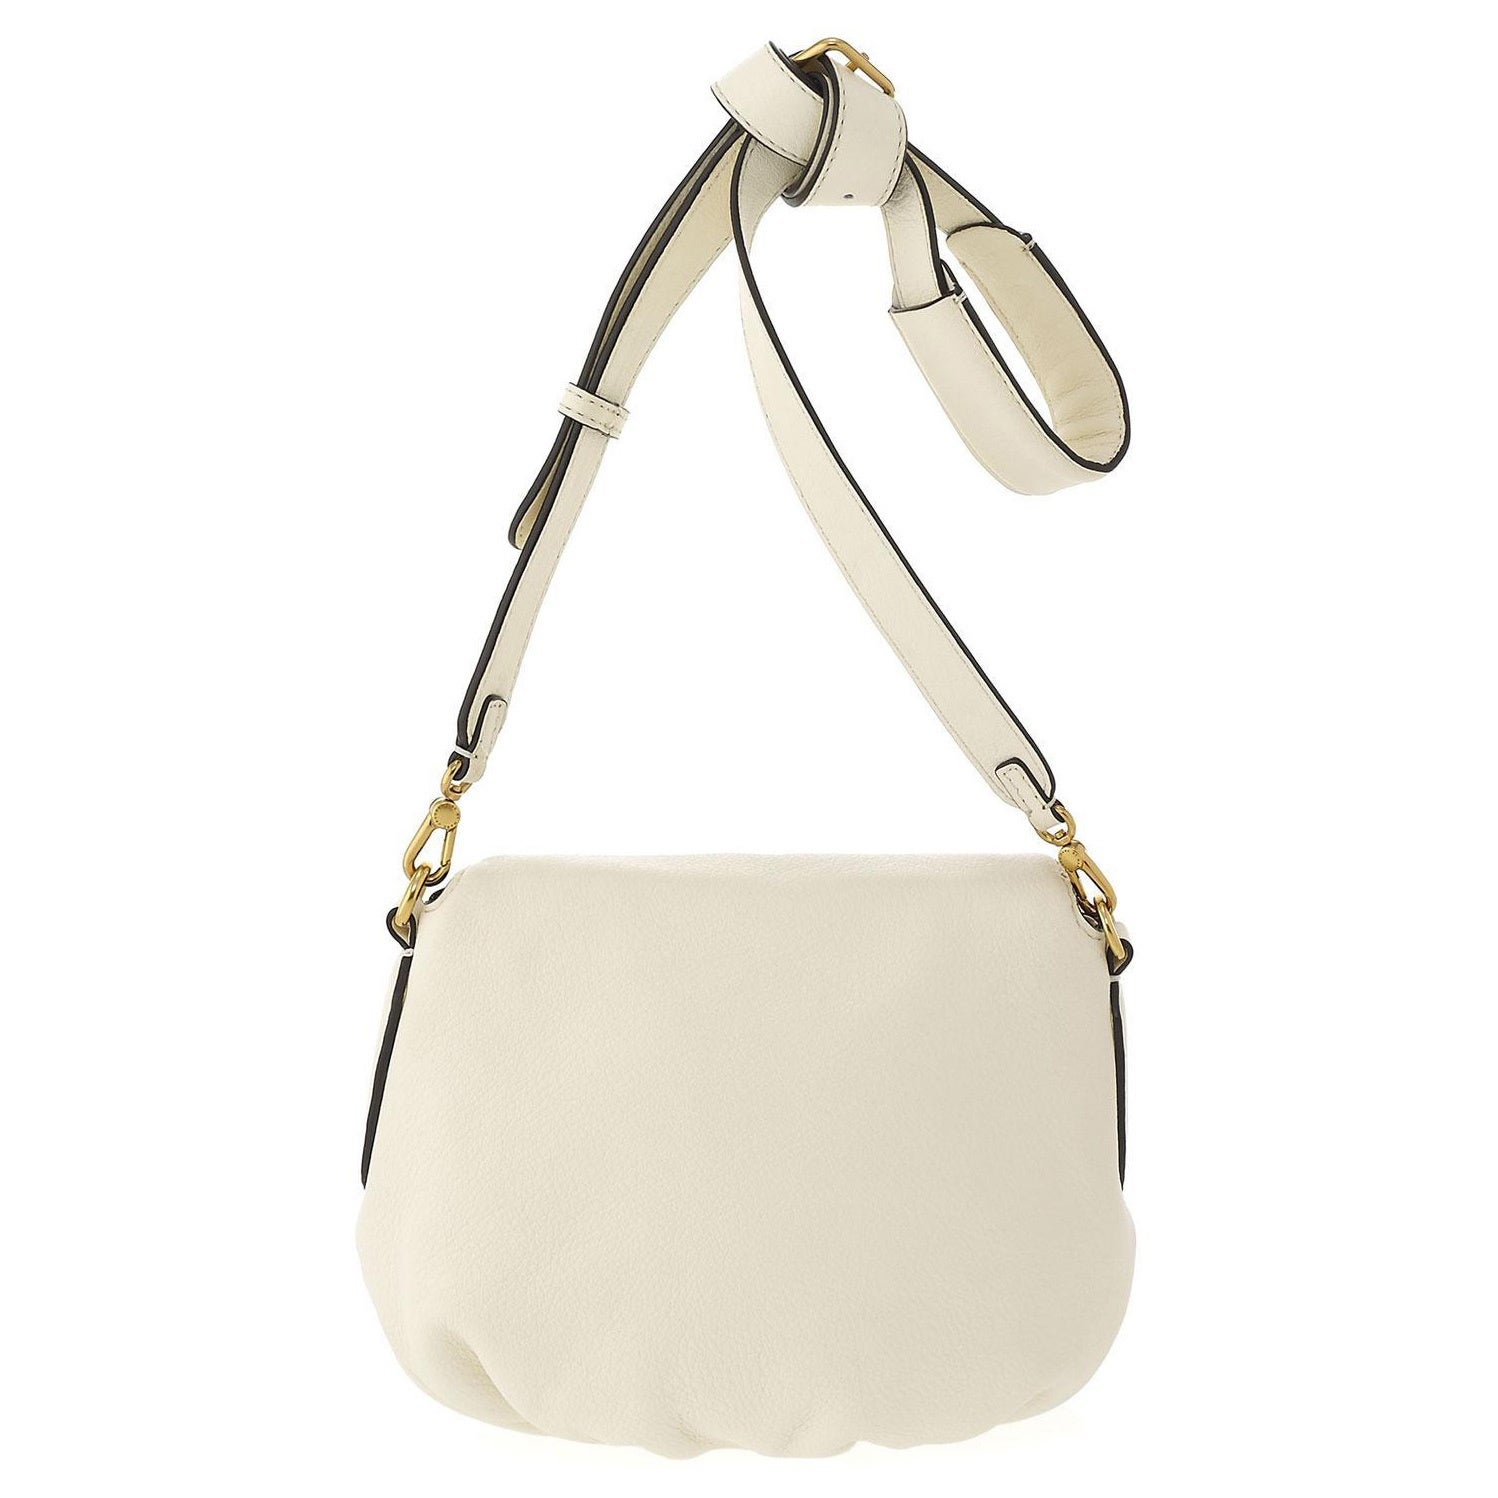 fc0764c70f7b Shop Marc By Marc Jacobs New Q Mini Natasha Leche Handbag - Free Shipping  Today - Overstock - 10297575